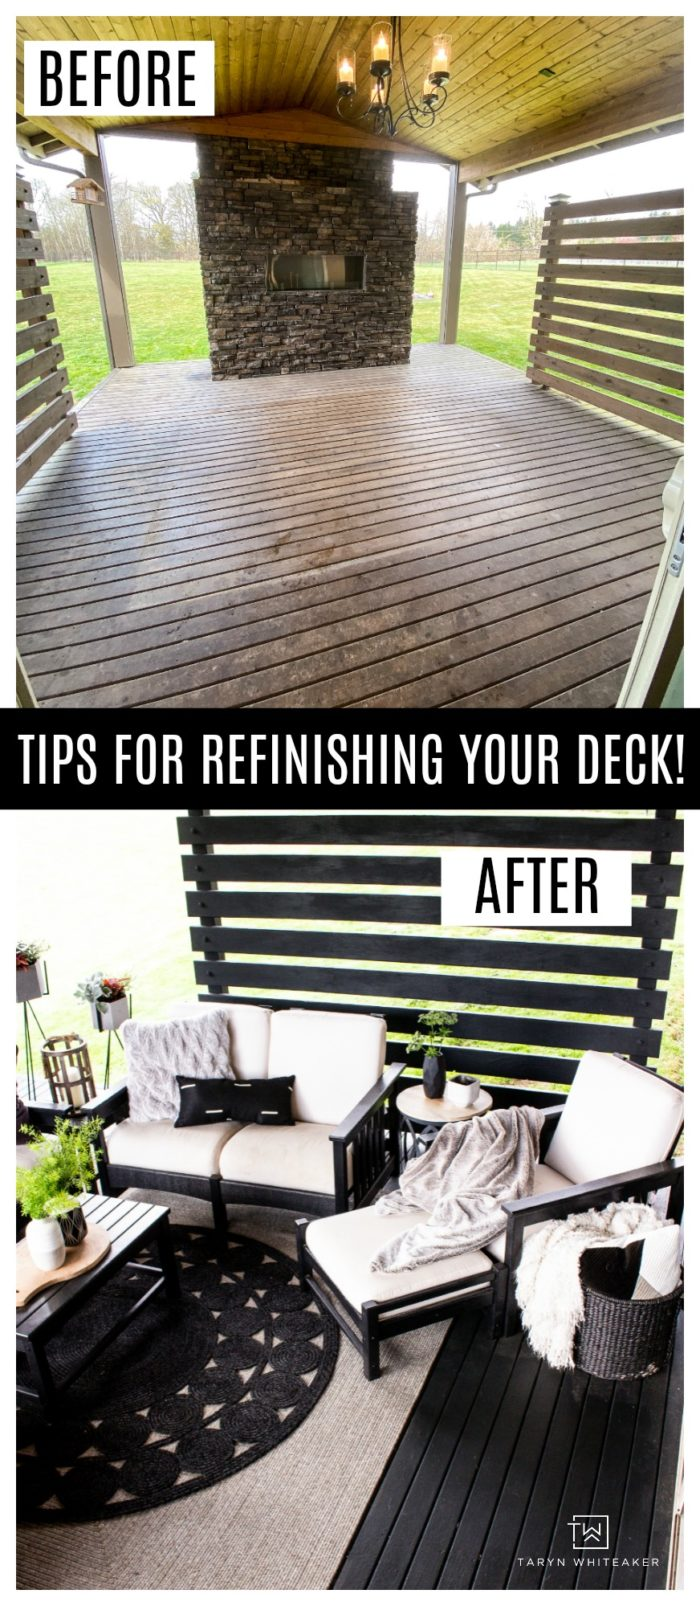 Get tips for painting a deck! Does your deck need refinishing? Learn how to clean, prep and paint your deck to give it a fresh look.